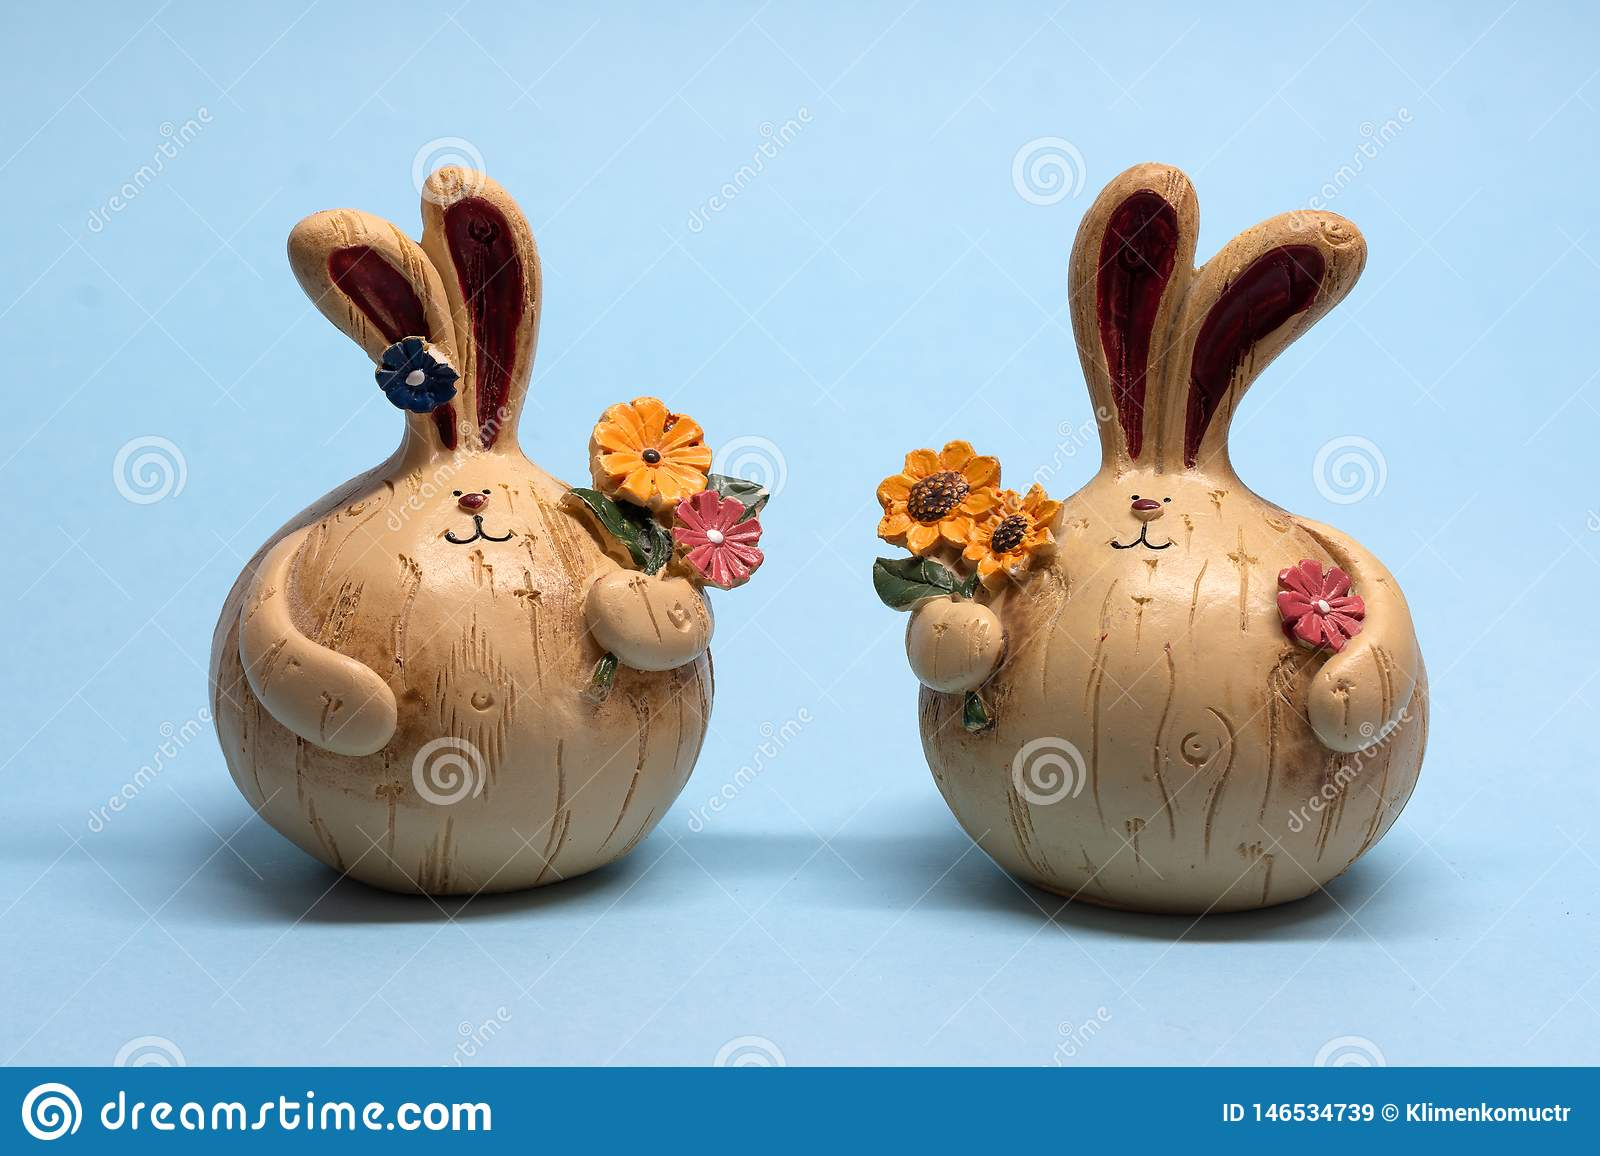 Small figures of two hares with flowers on a blue background